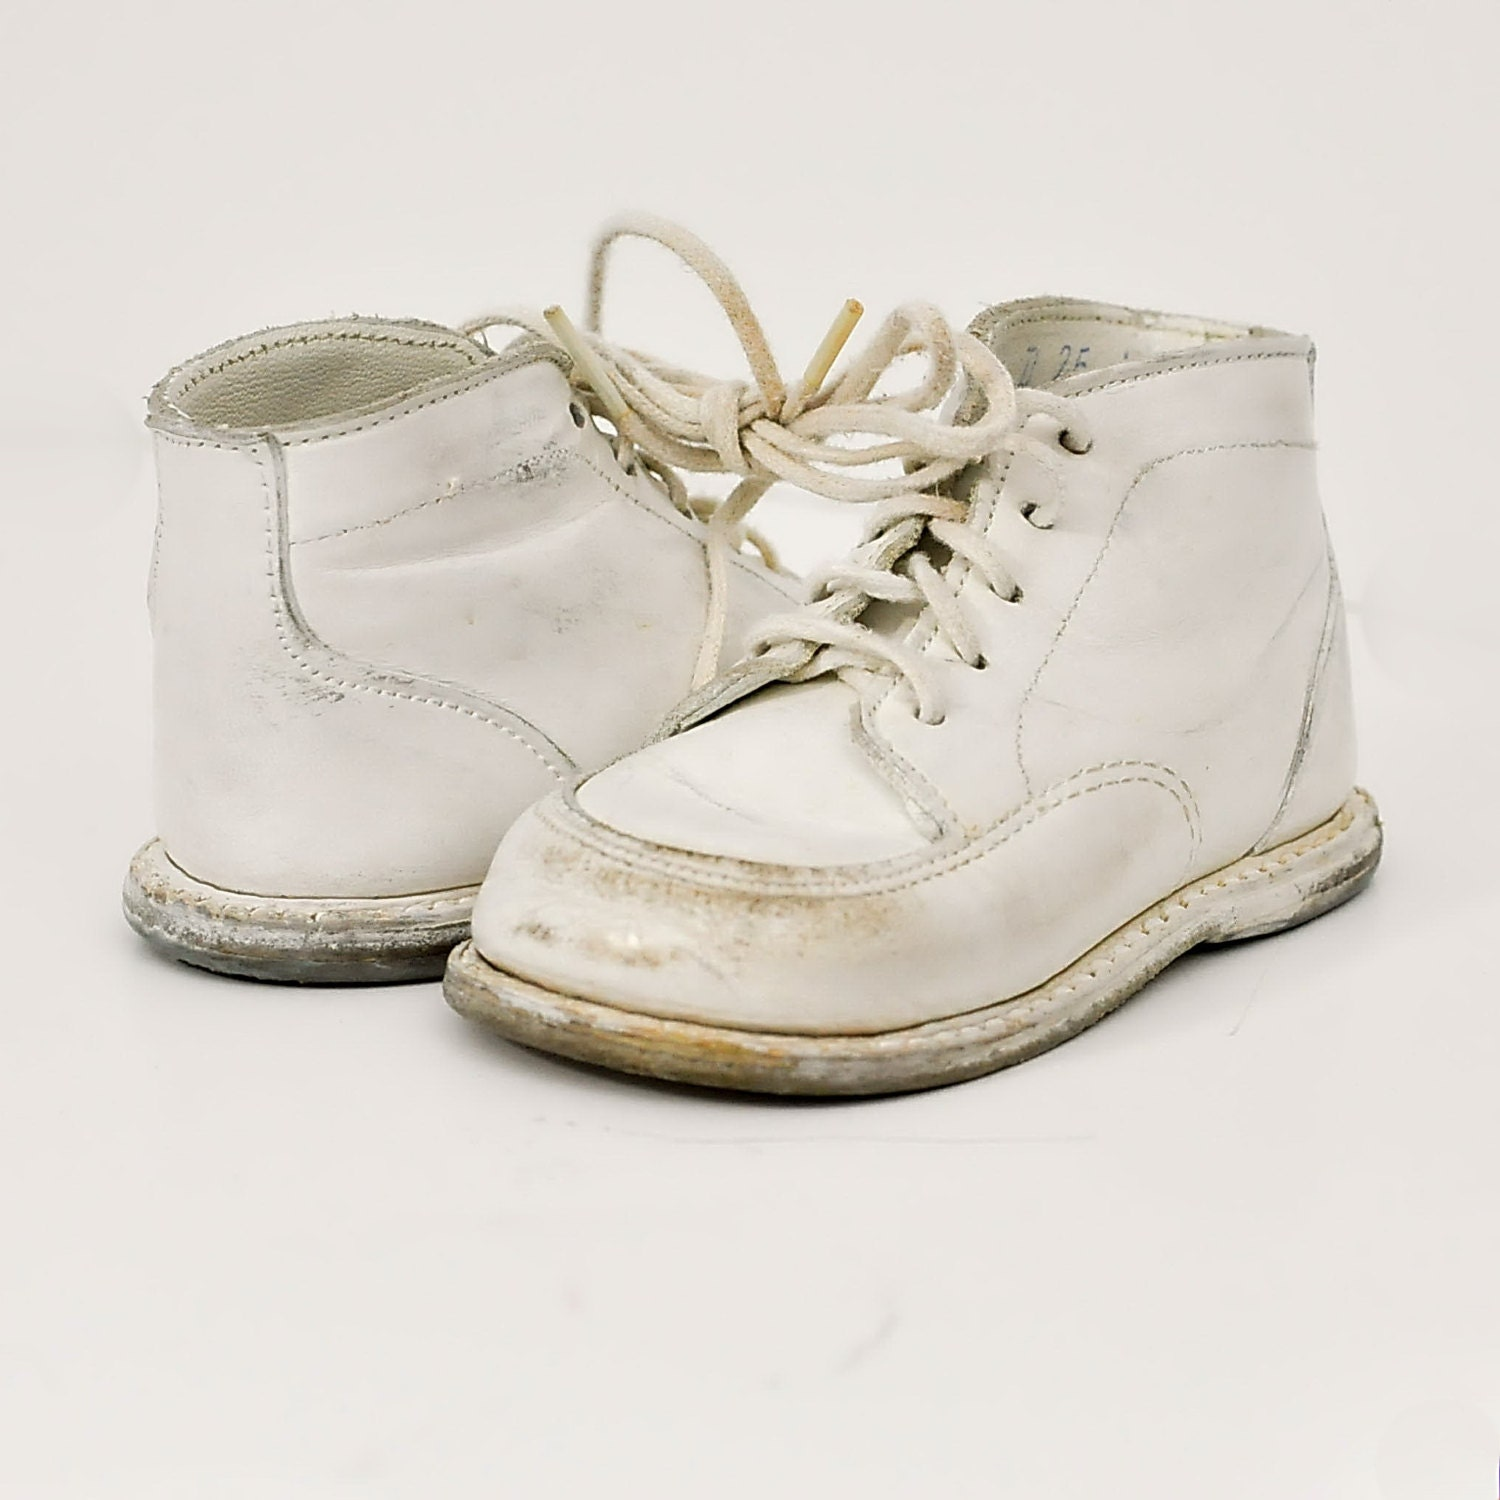 Pussyfoots Savage White Leather Baby Boots Shoes Booties